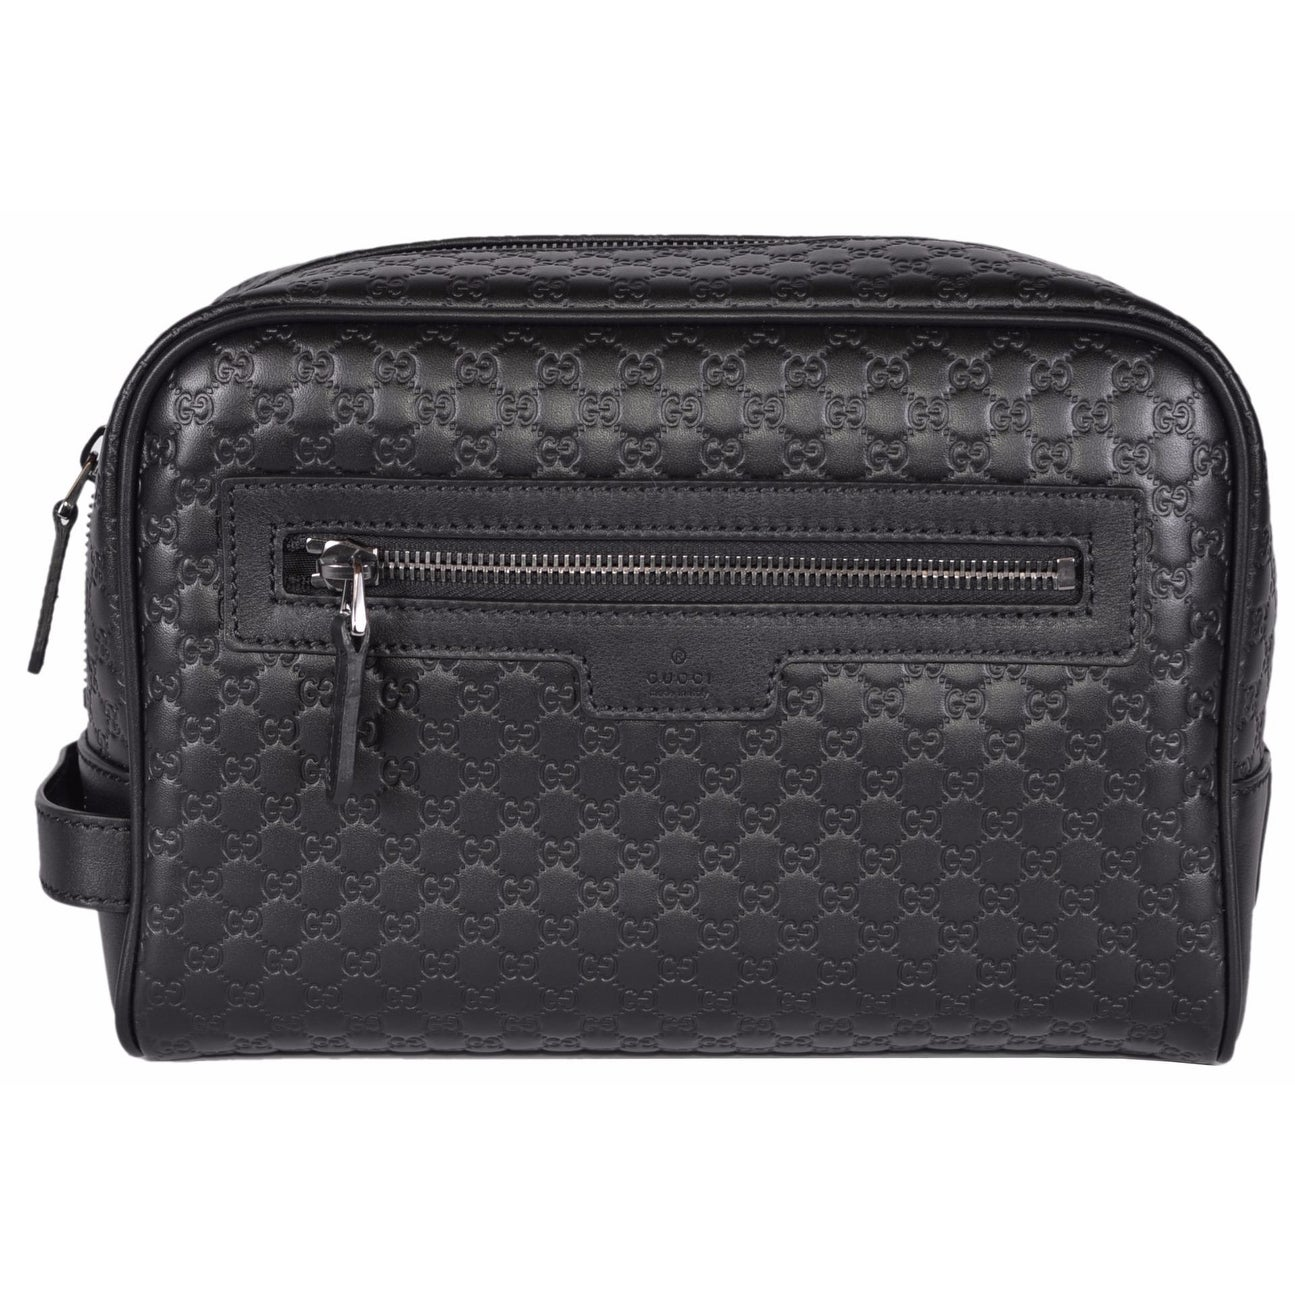 a63d8f80db5c Shop Gucci Men's 419775 Black Leather Micro GG Guccissima Large Toiletry  Dopp Bag - Free Shipping Today - Overstock - 14085700